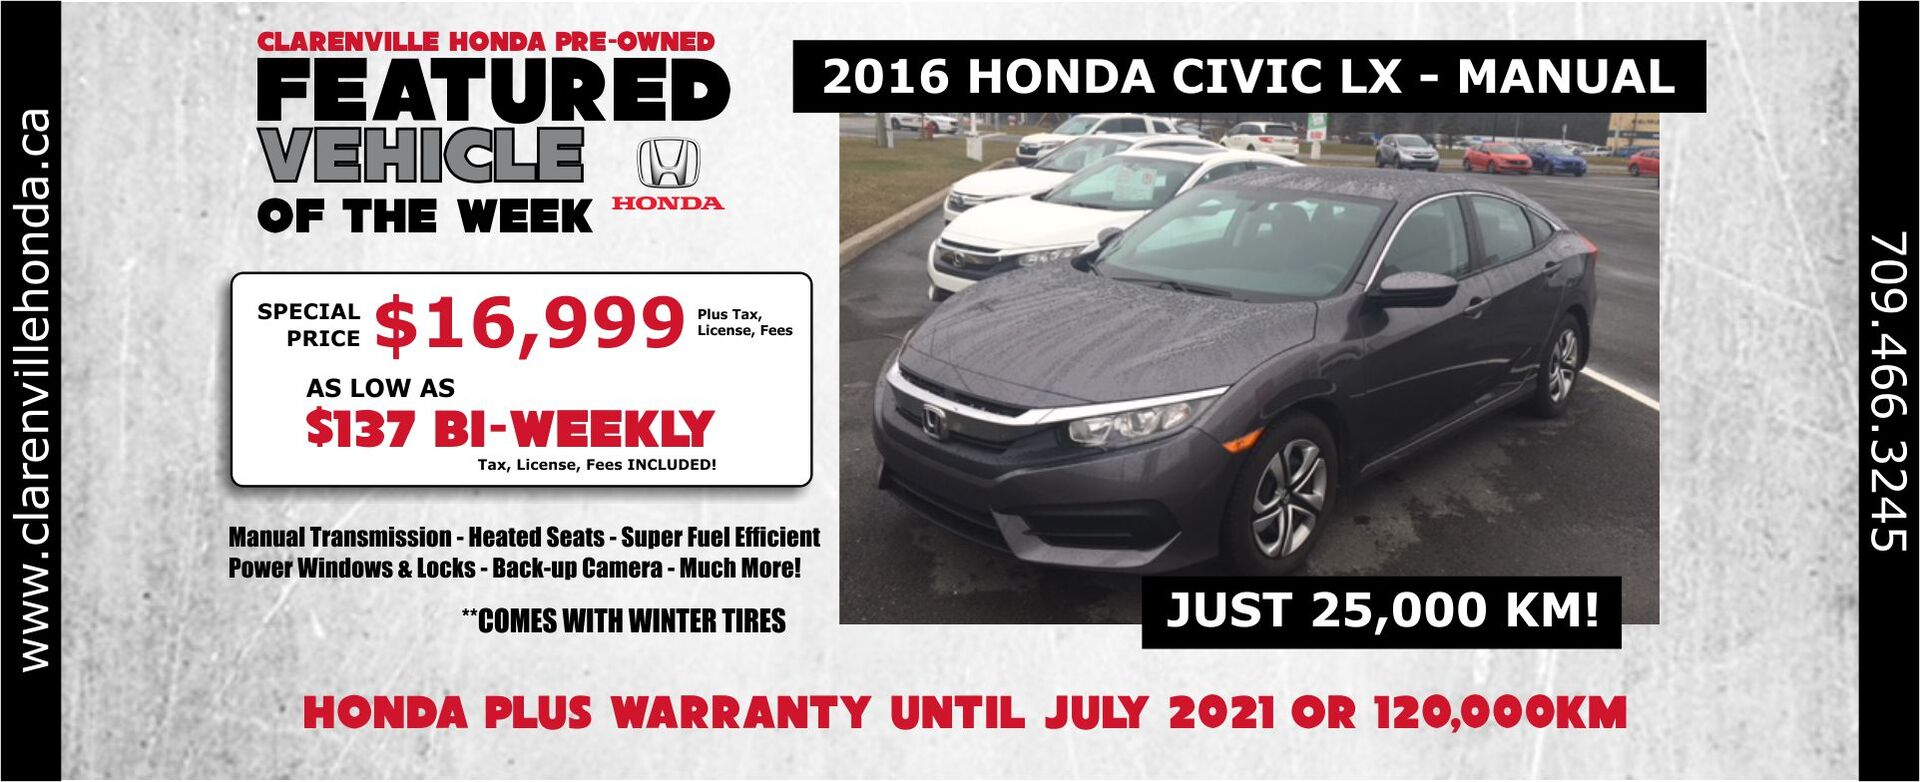 Pre-owned Feature 2016 Civic LX